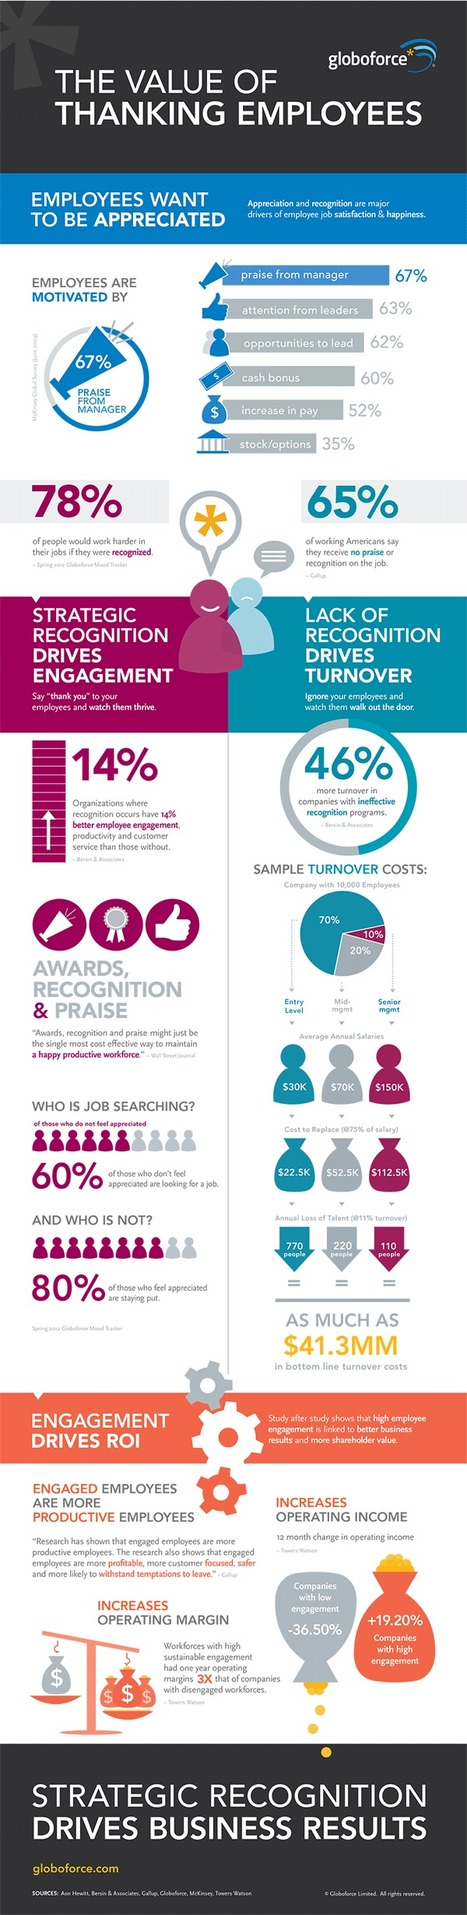 Infographic: The Business Value of Thank You | Prionomy | Scoop.it